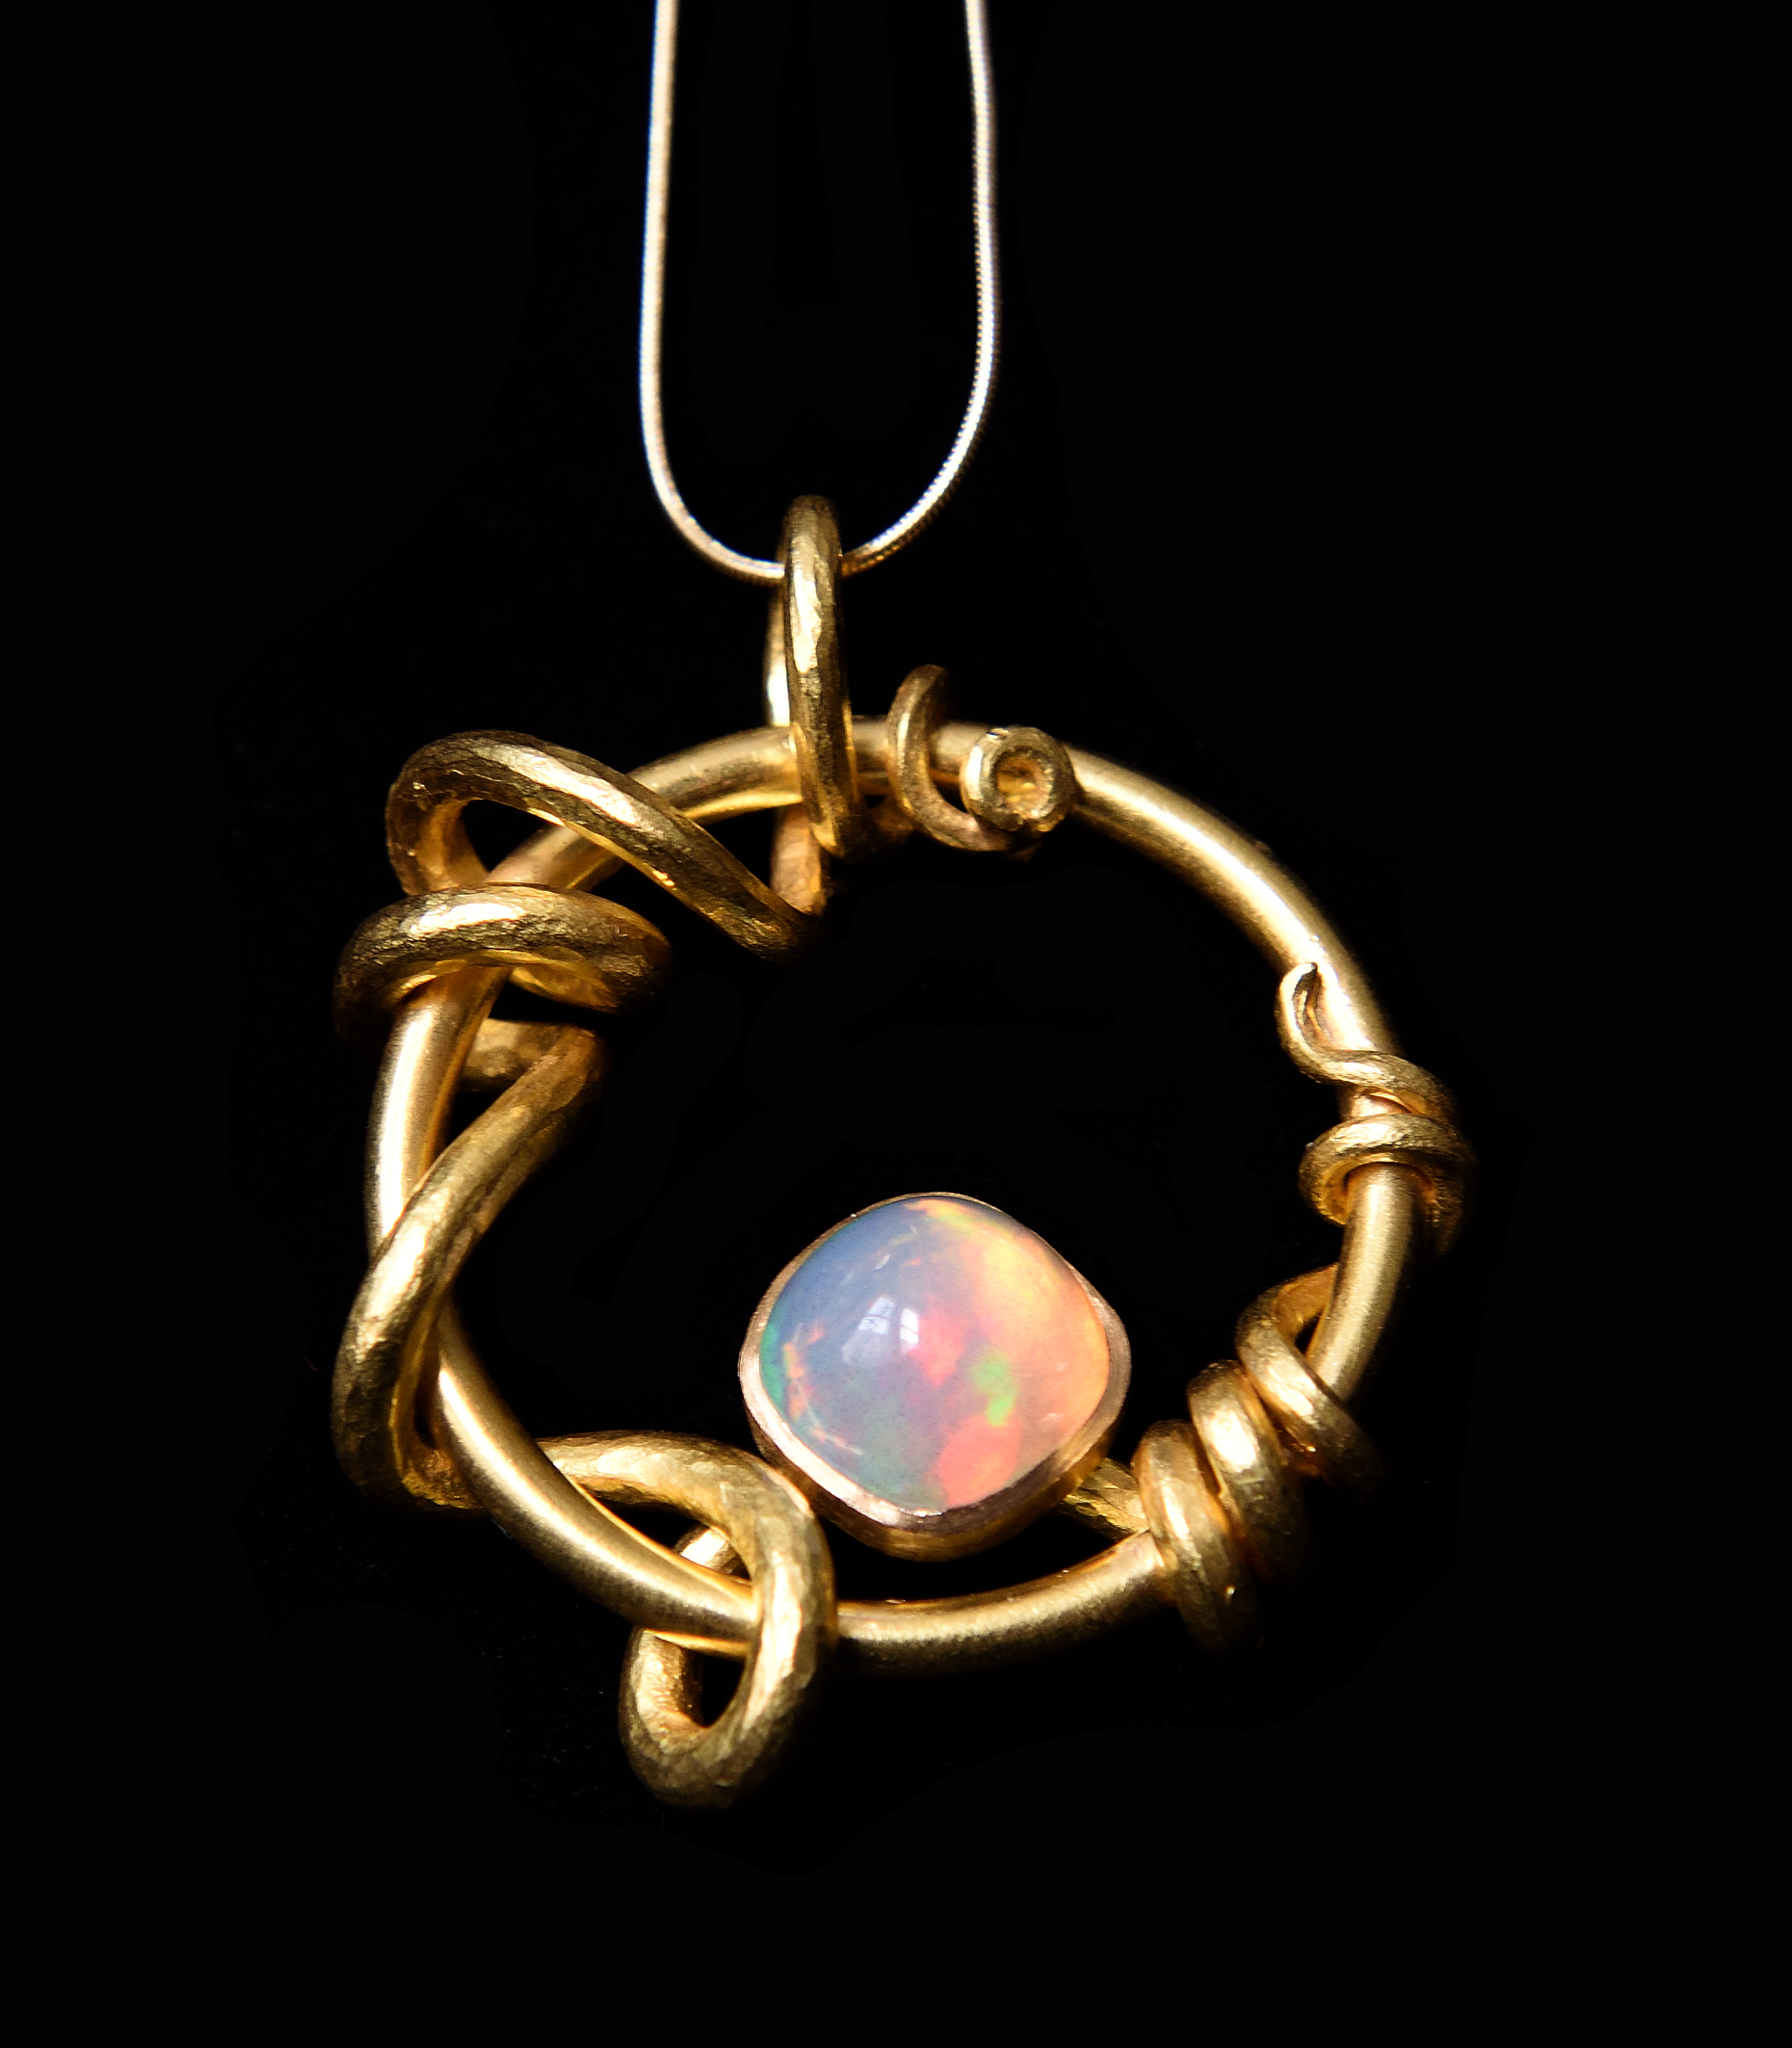 22ct gold and opal pendant